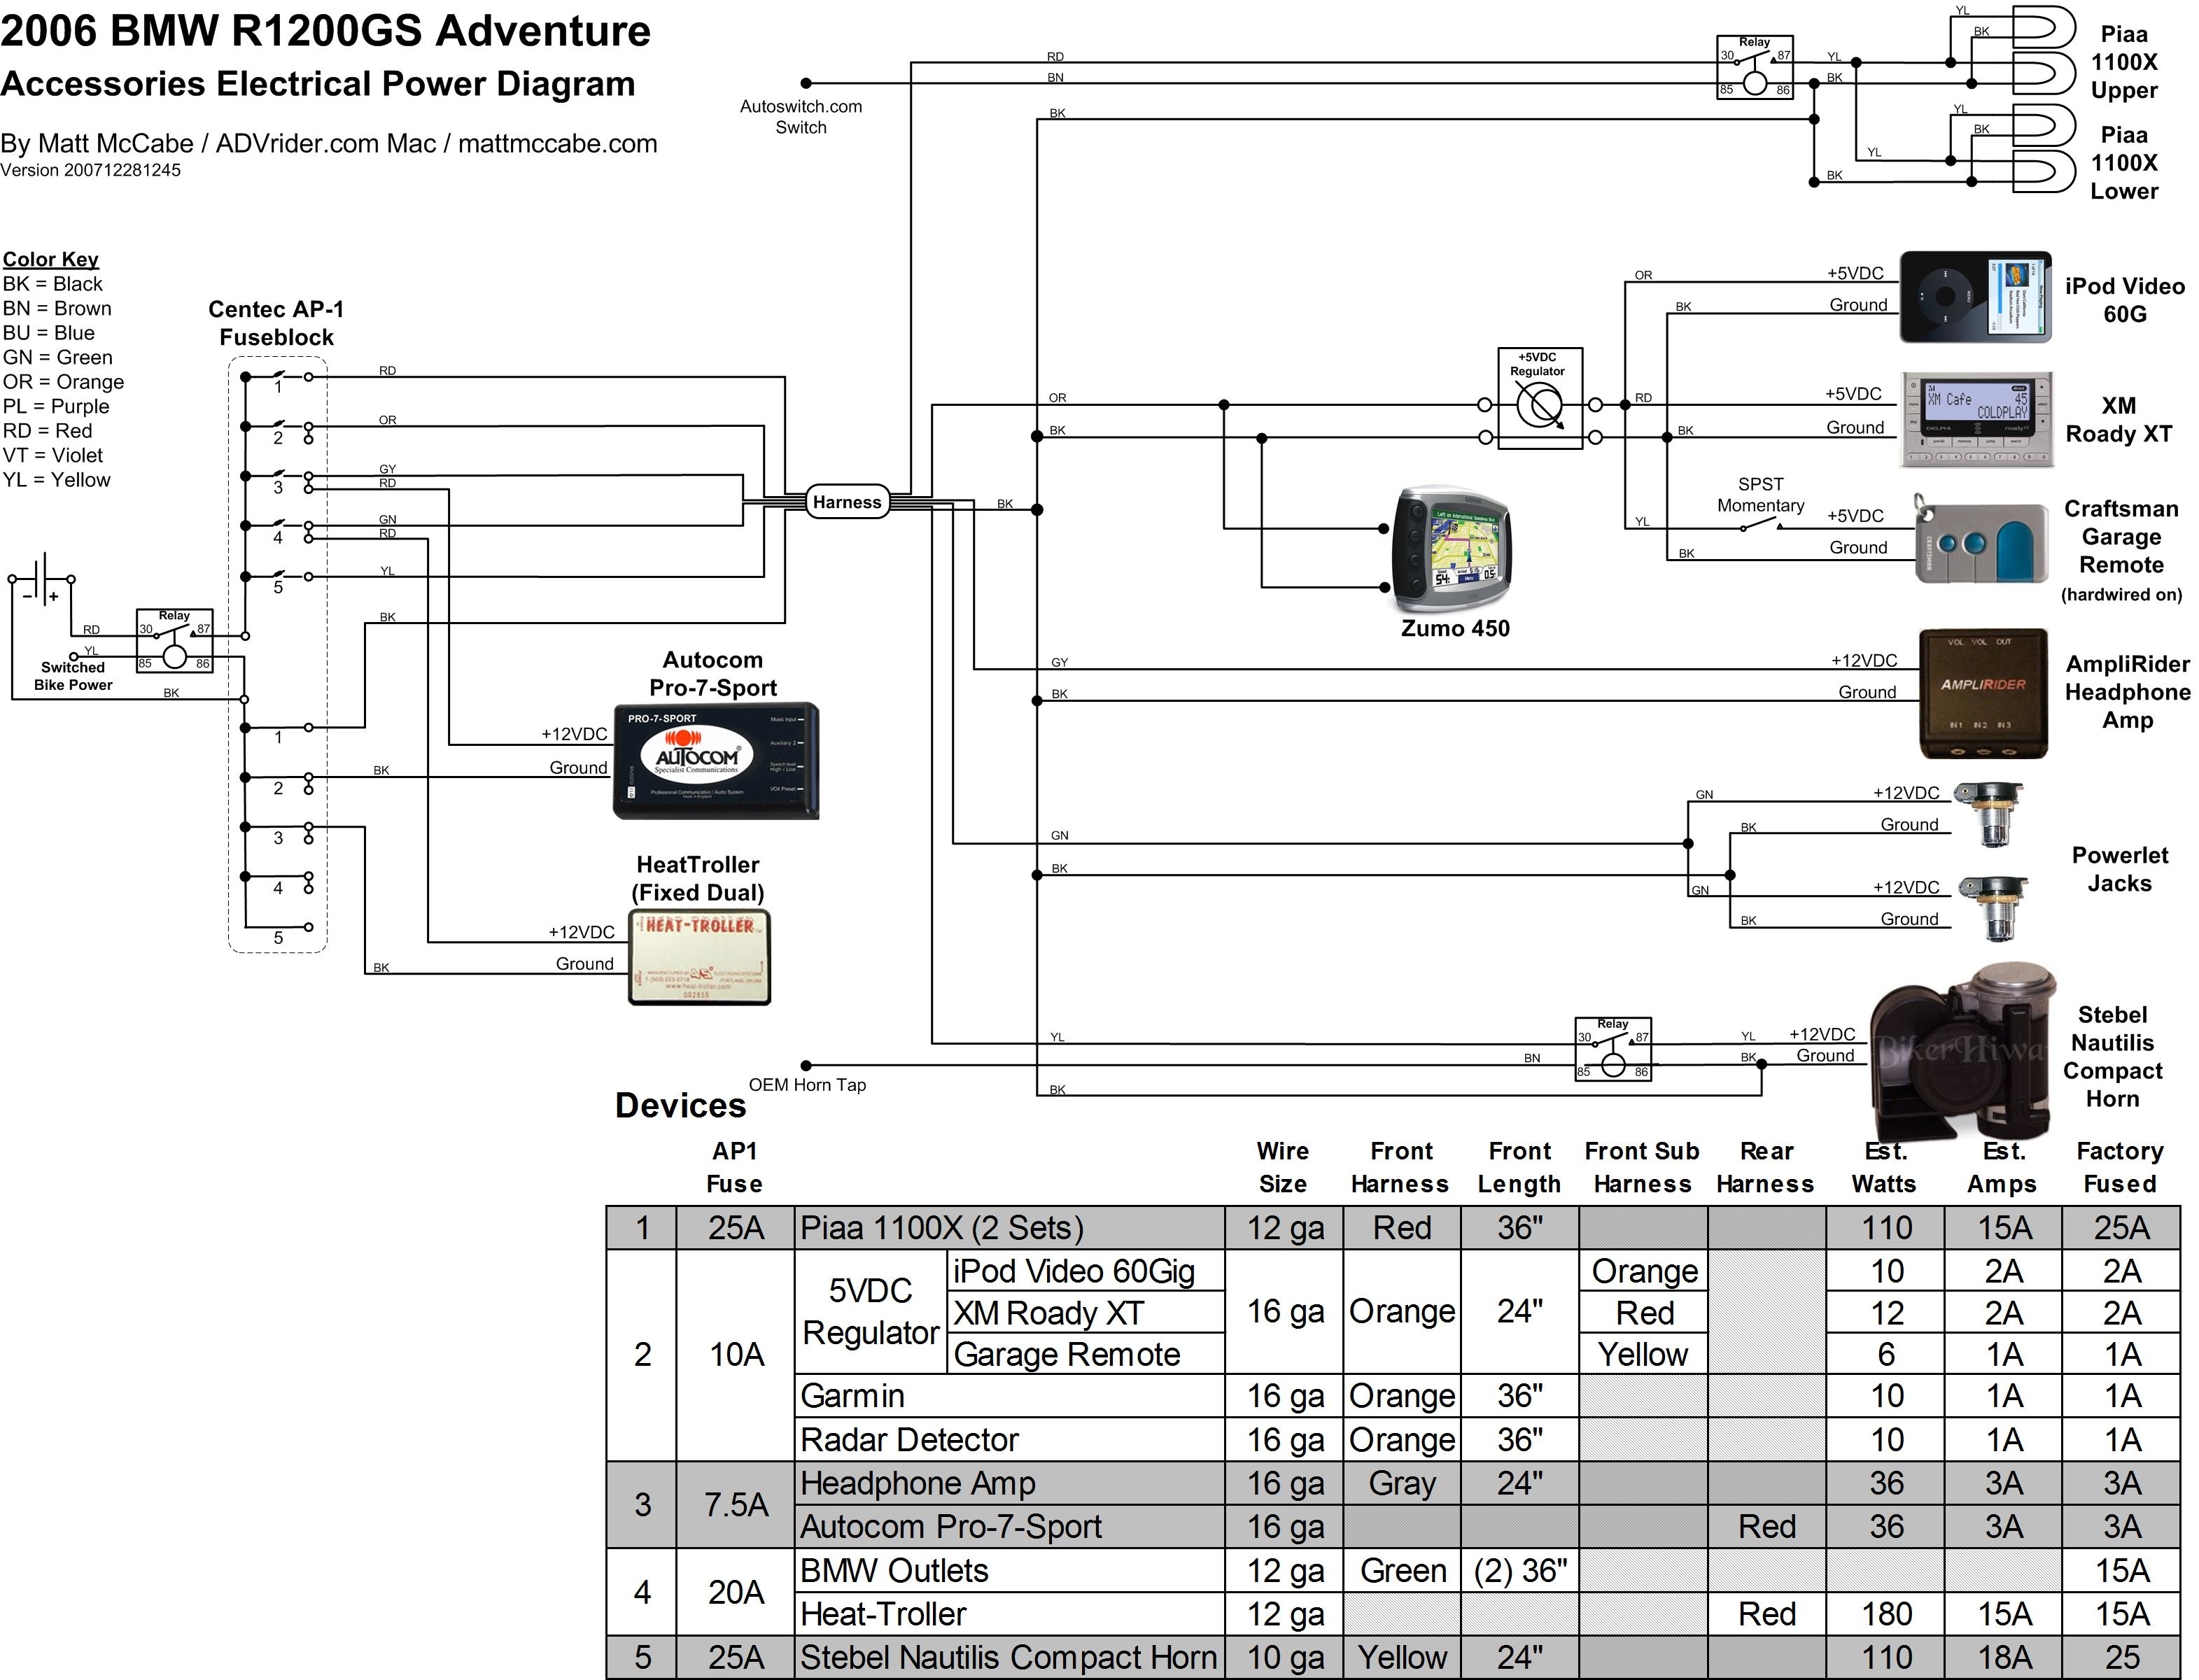 BMW_R1200GSAdv_Accessories_Wiring_Diagram_Version_200712281245_McCabe share centech wiring instructions street rod wiring \u2022 wiring diagram  at n-0.co